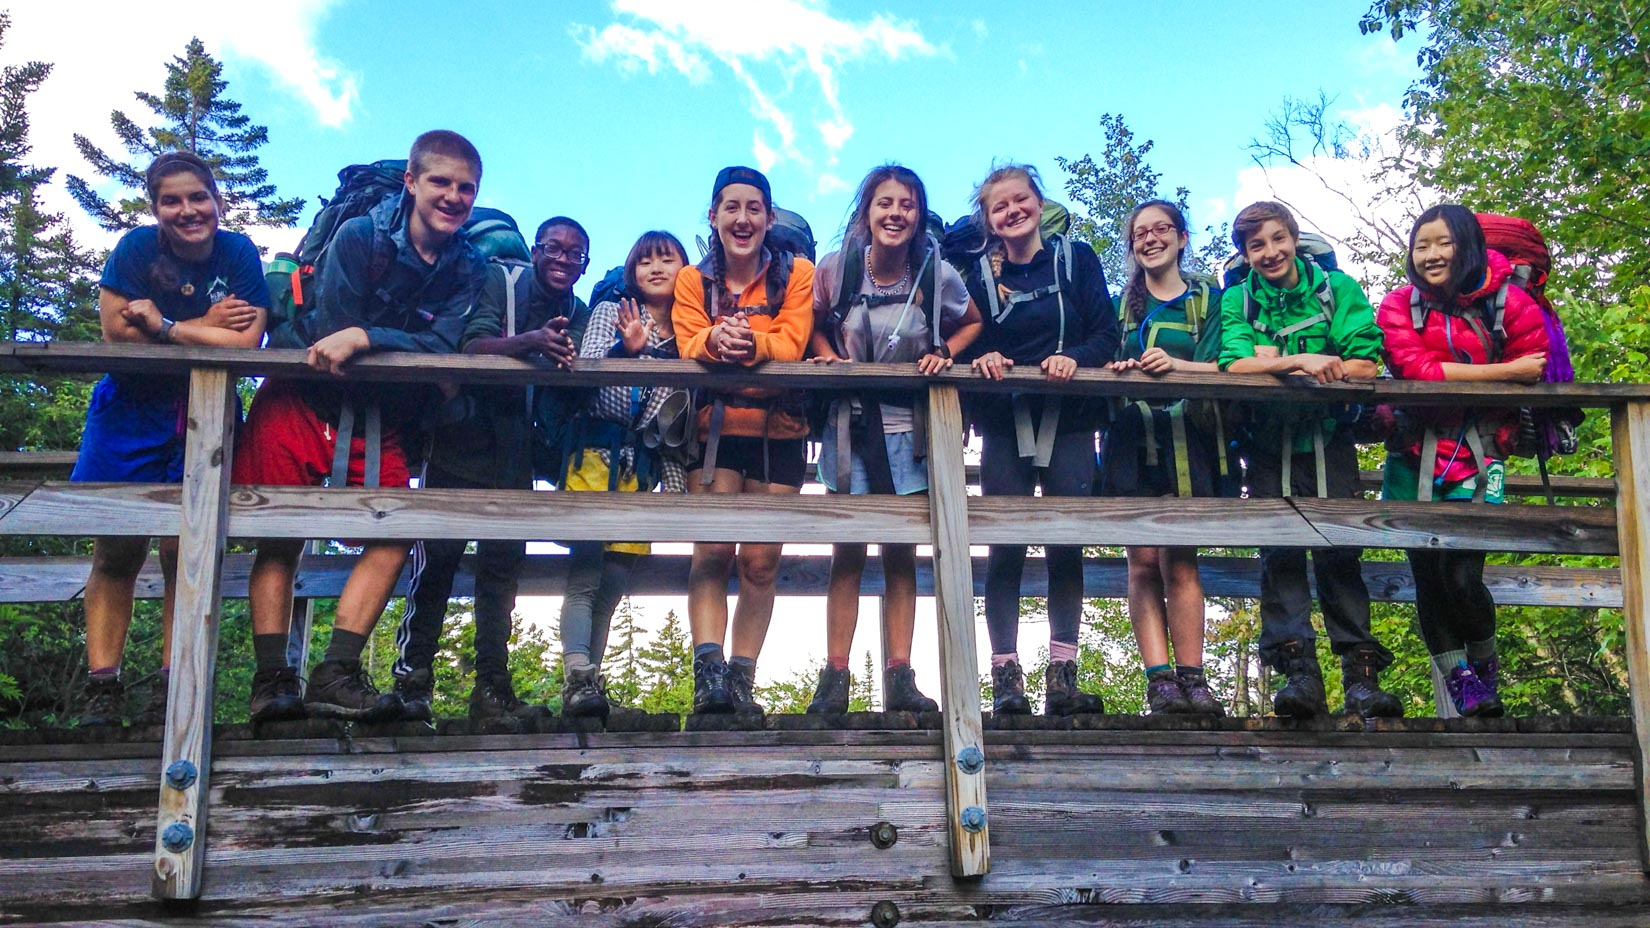 Campers on a bridge smiling at the camera